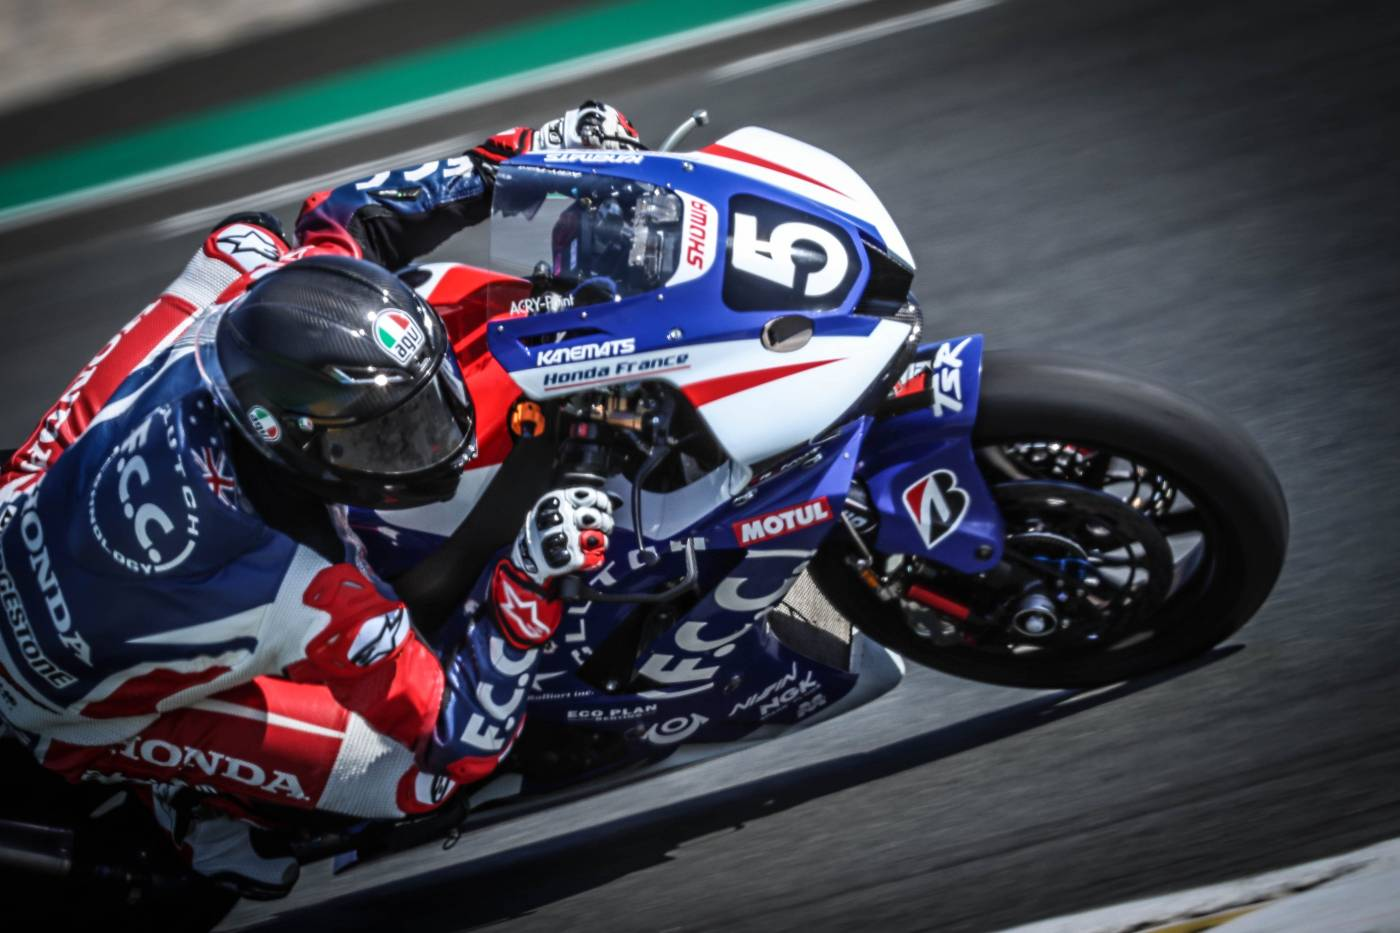 Honda teams complete Le Mans test ahead of the 2021 FIM Endurance World Championship